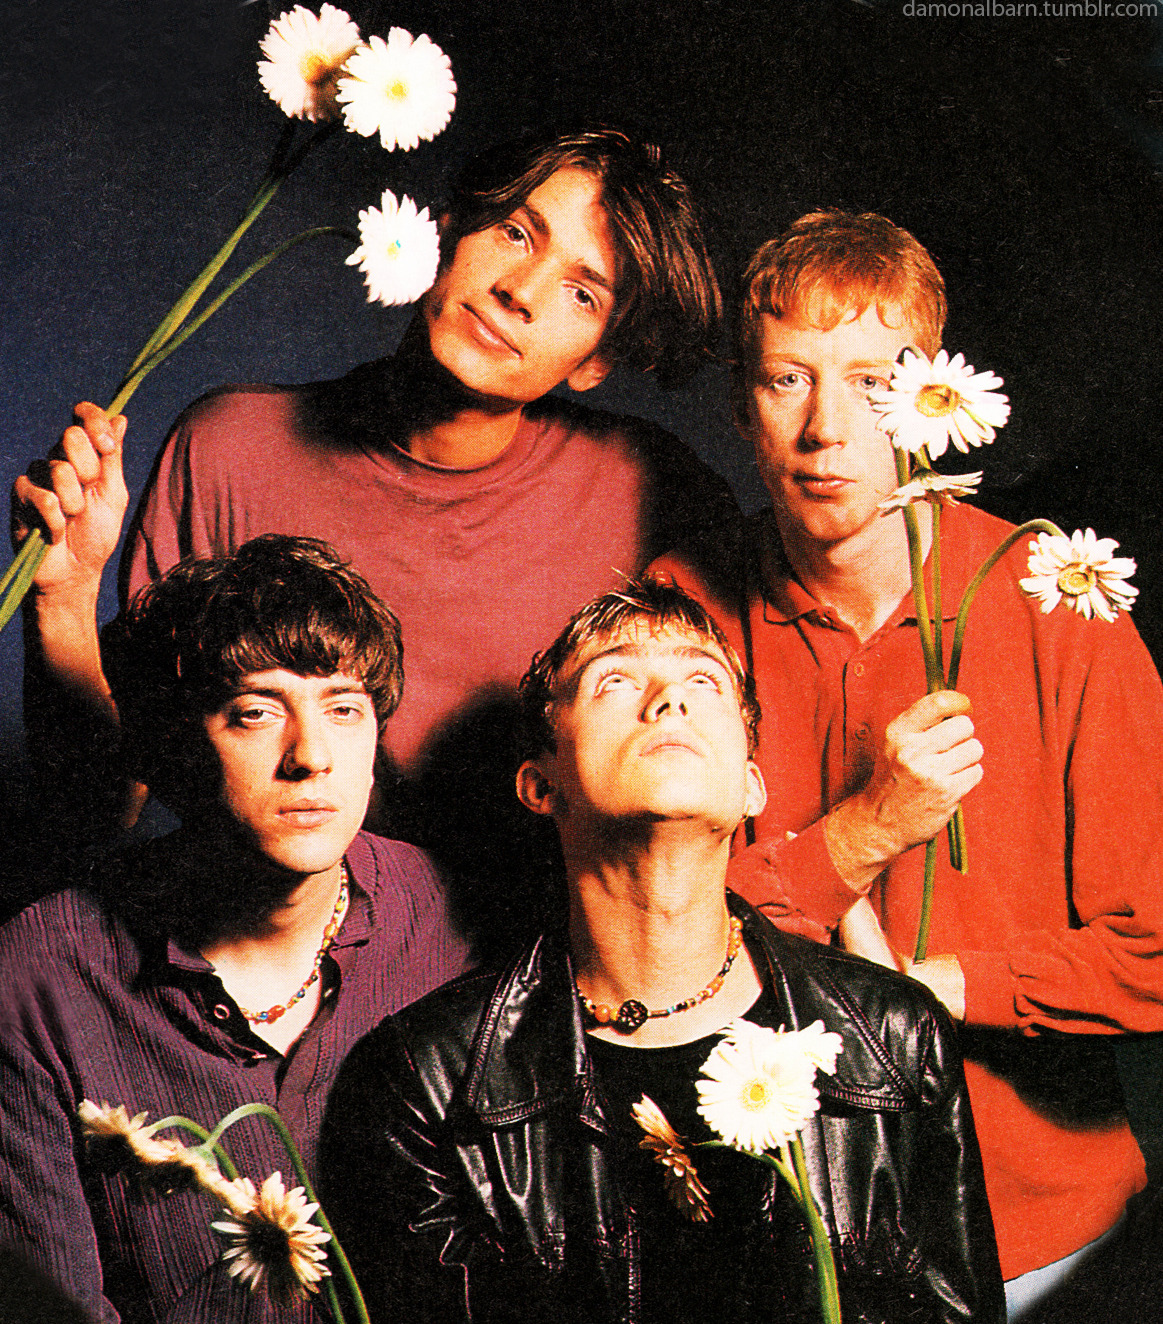 Select - Oct. 1991 | (scan by damonalbarn)